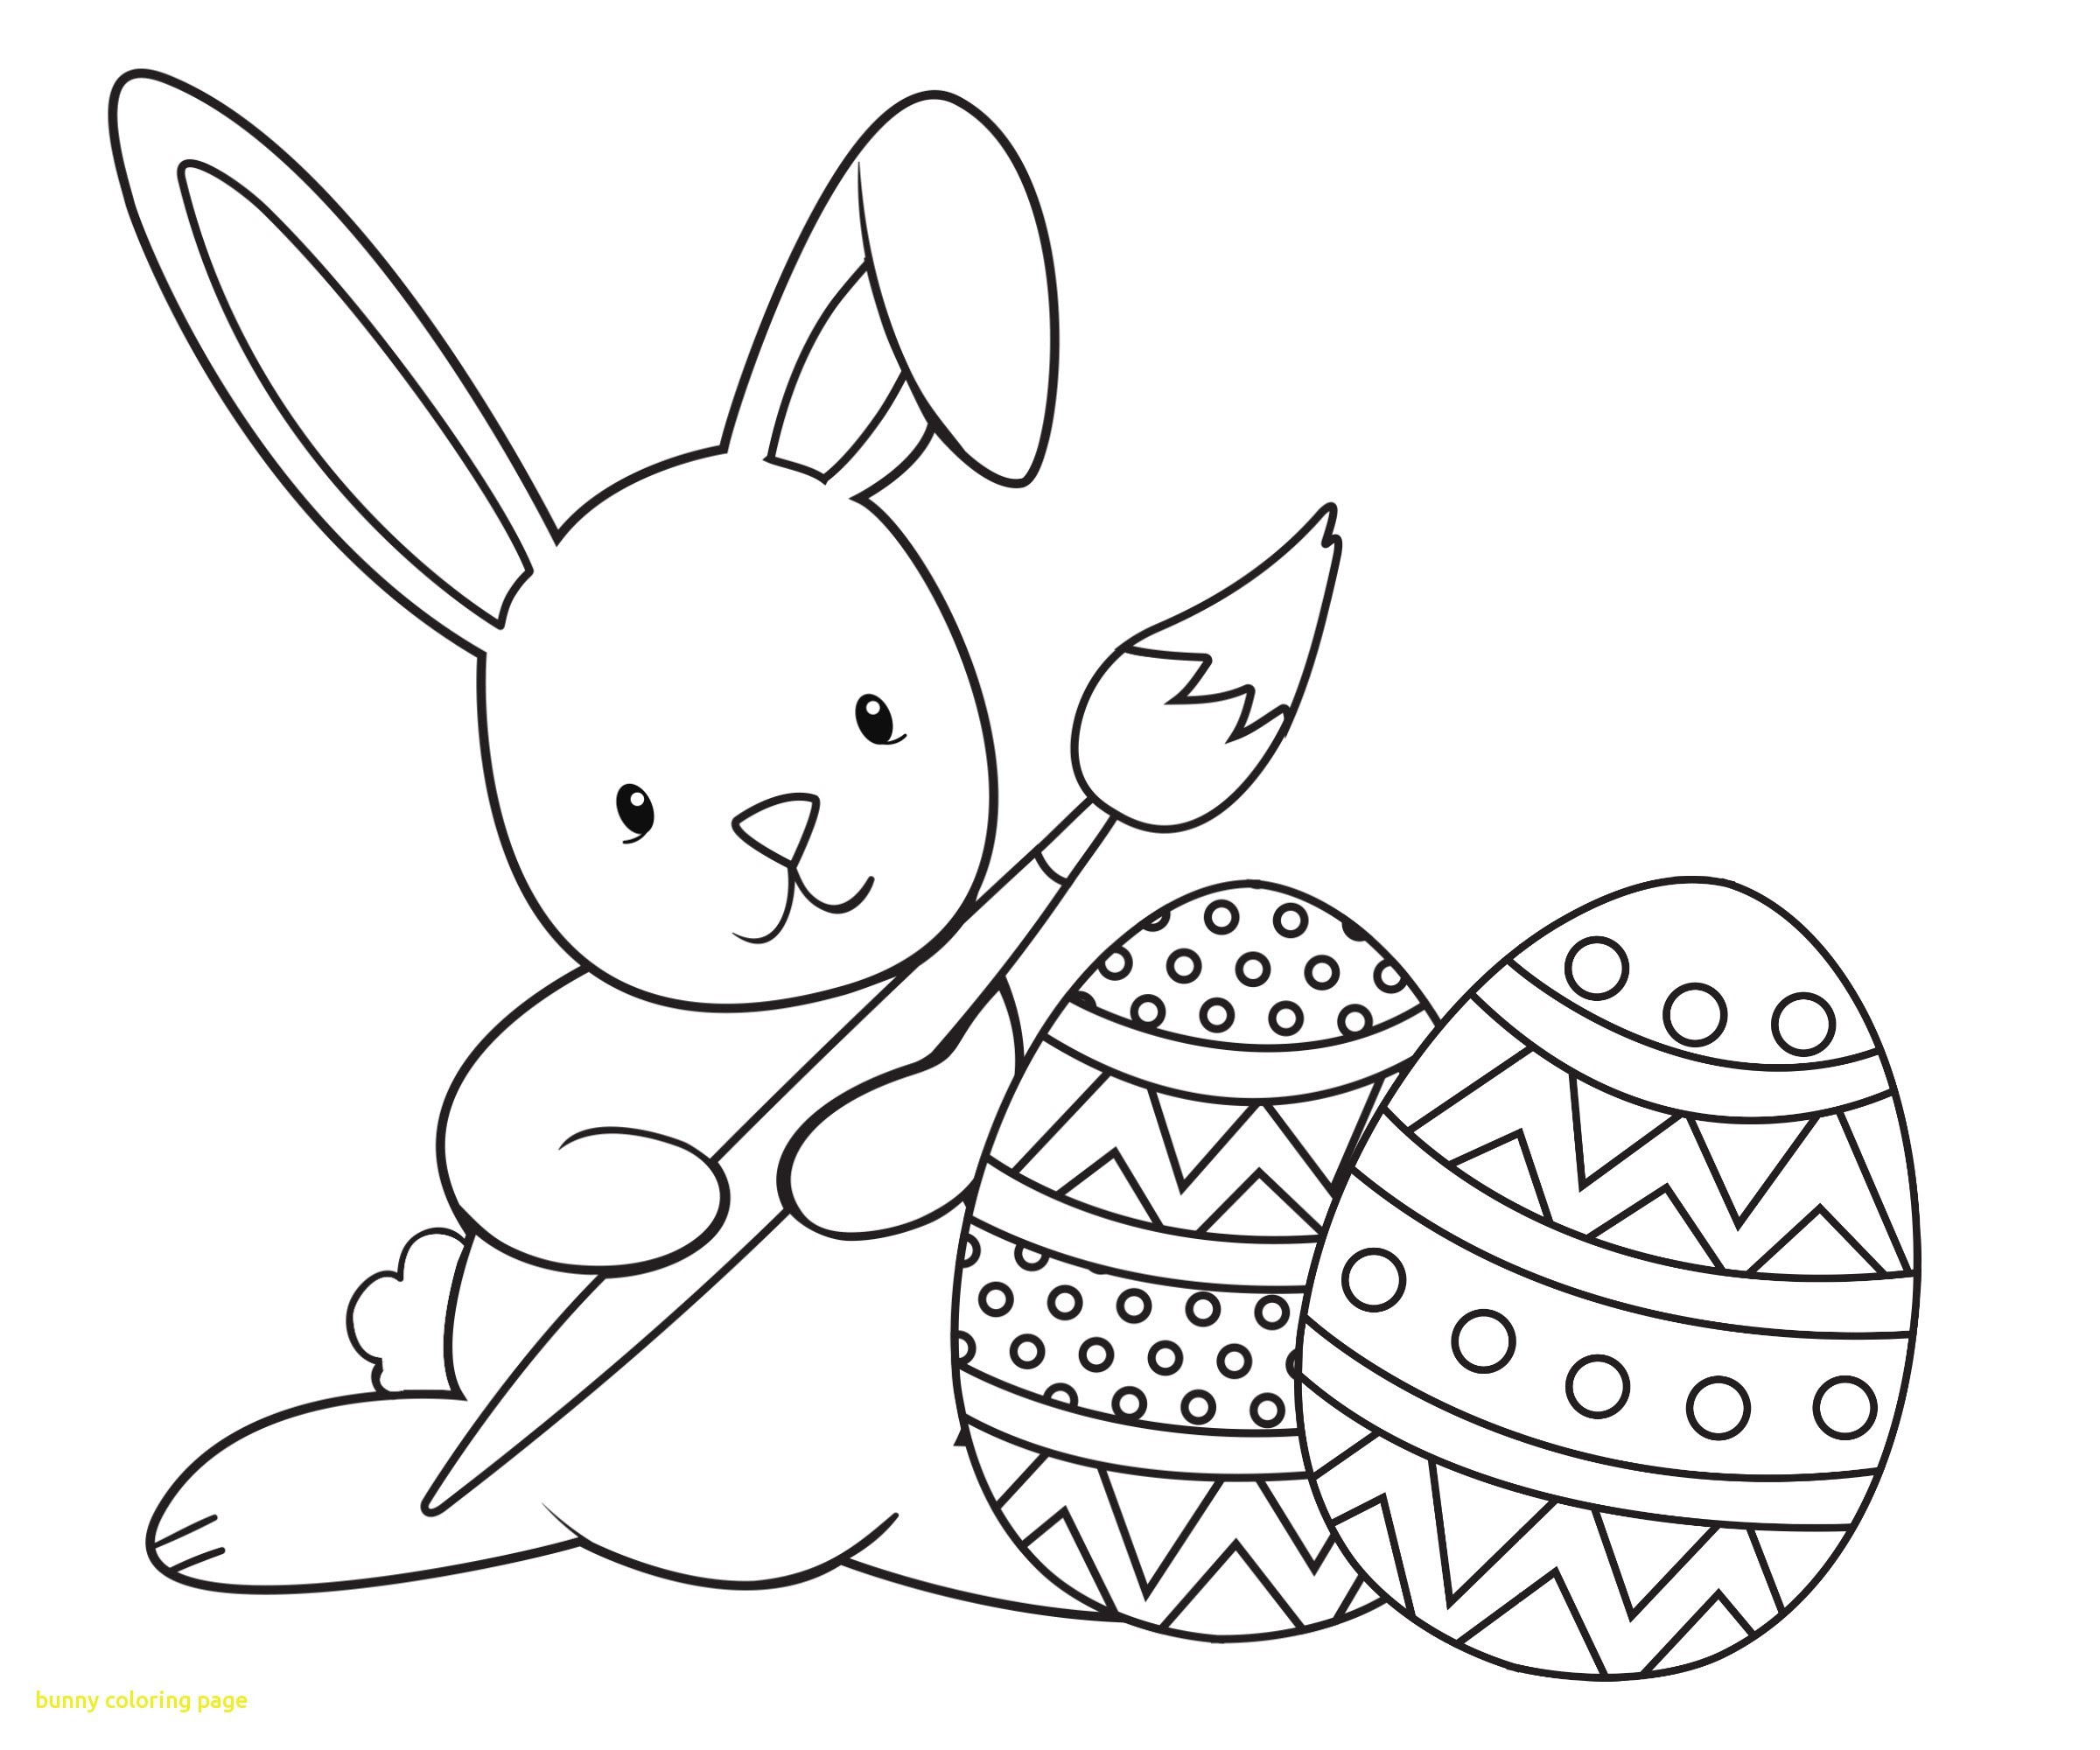 Coloring Pages Of Easter Eggs And Bunnies at GetDrawings ...